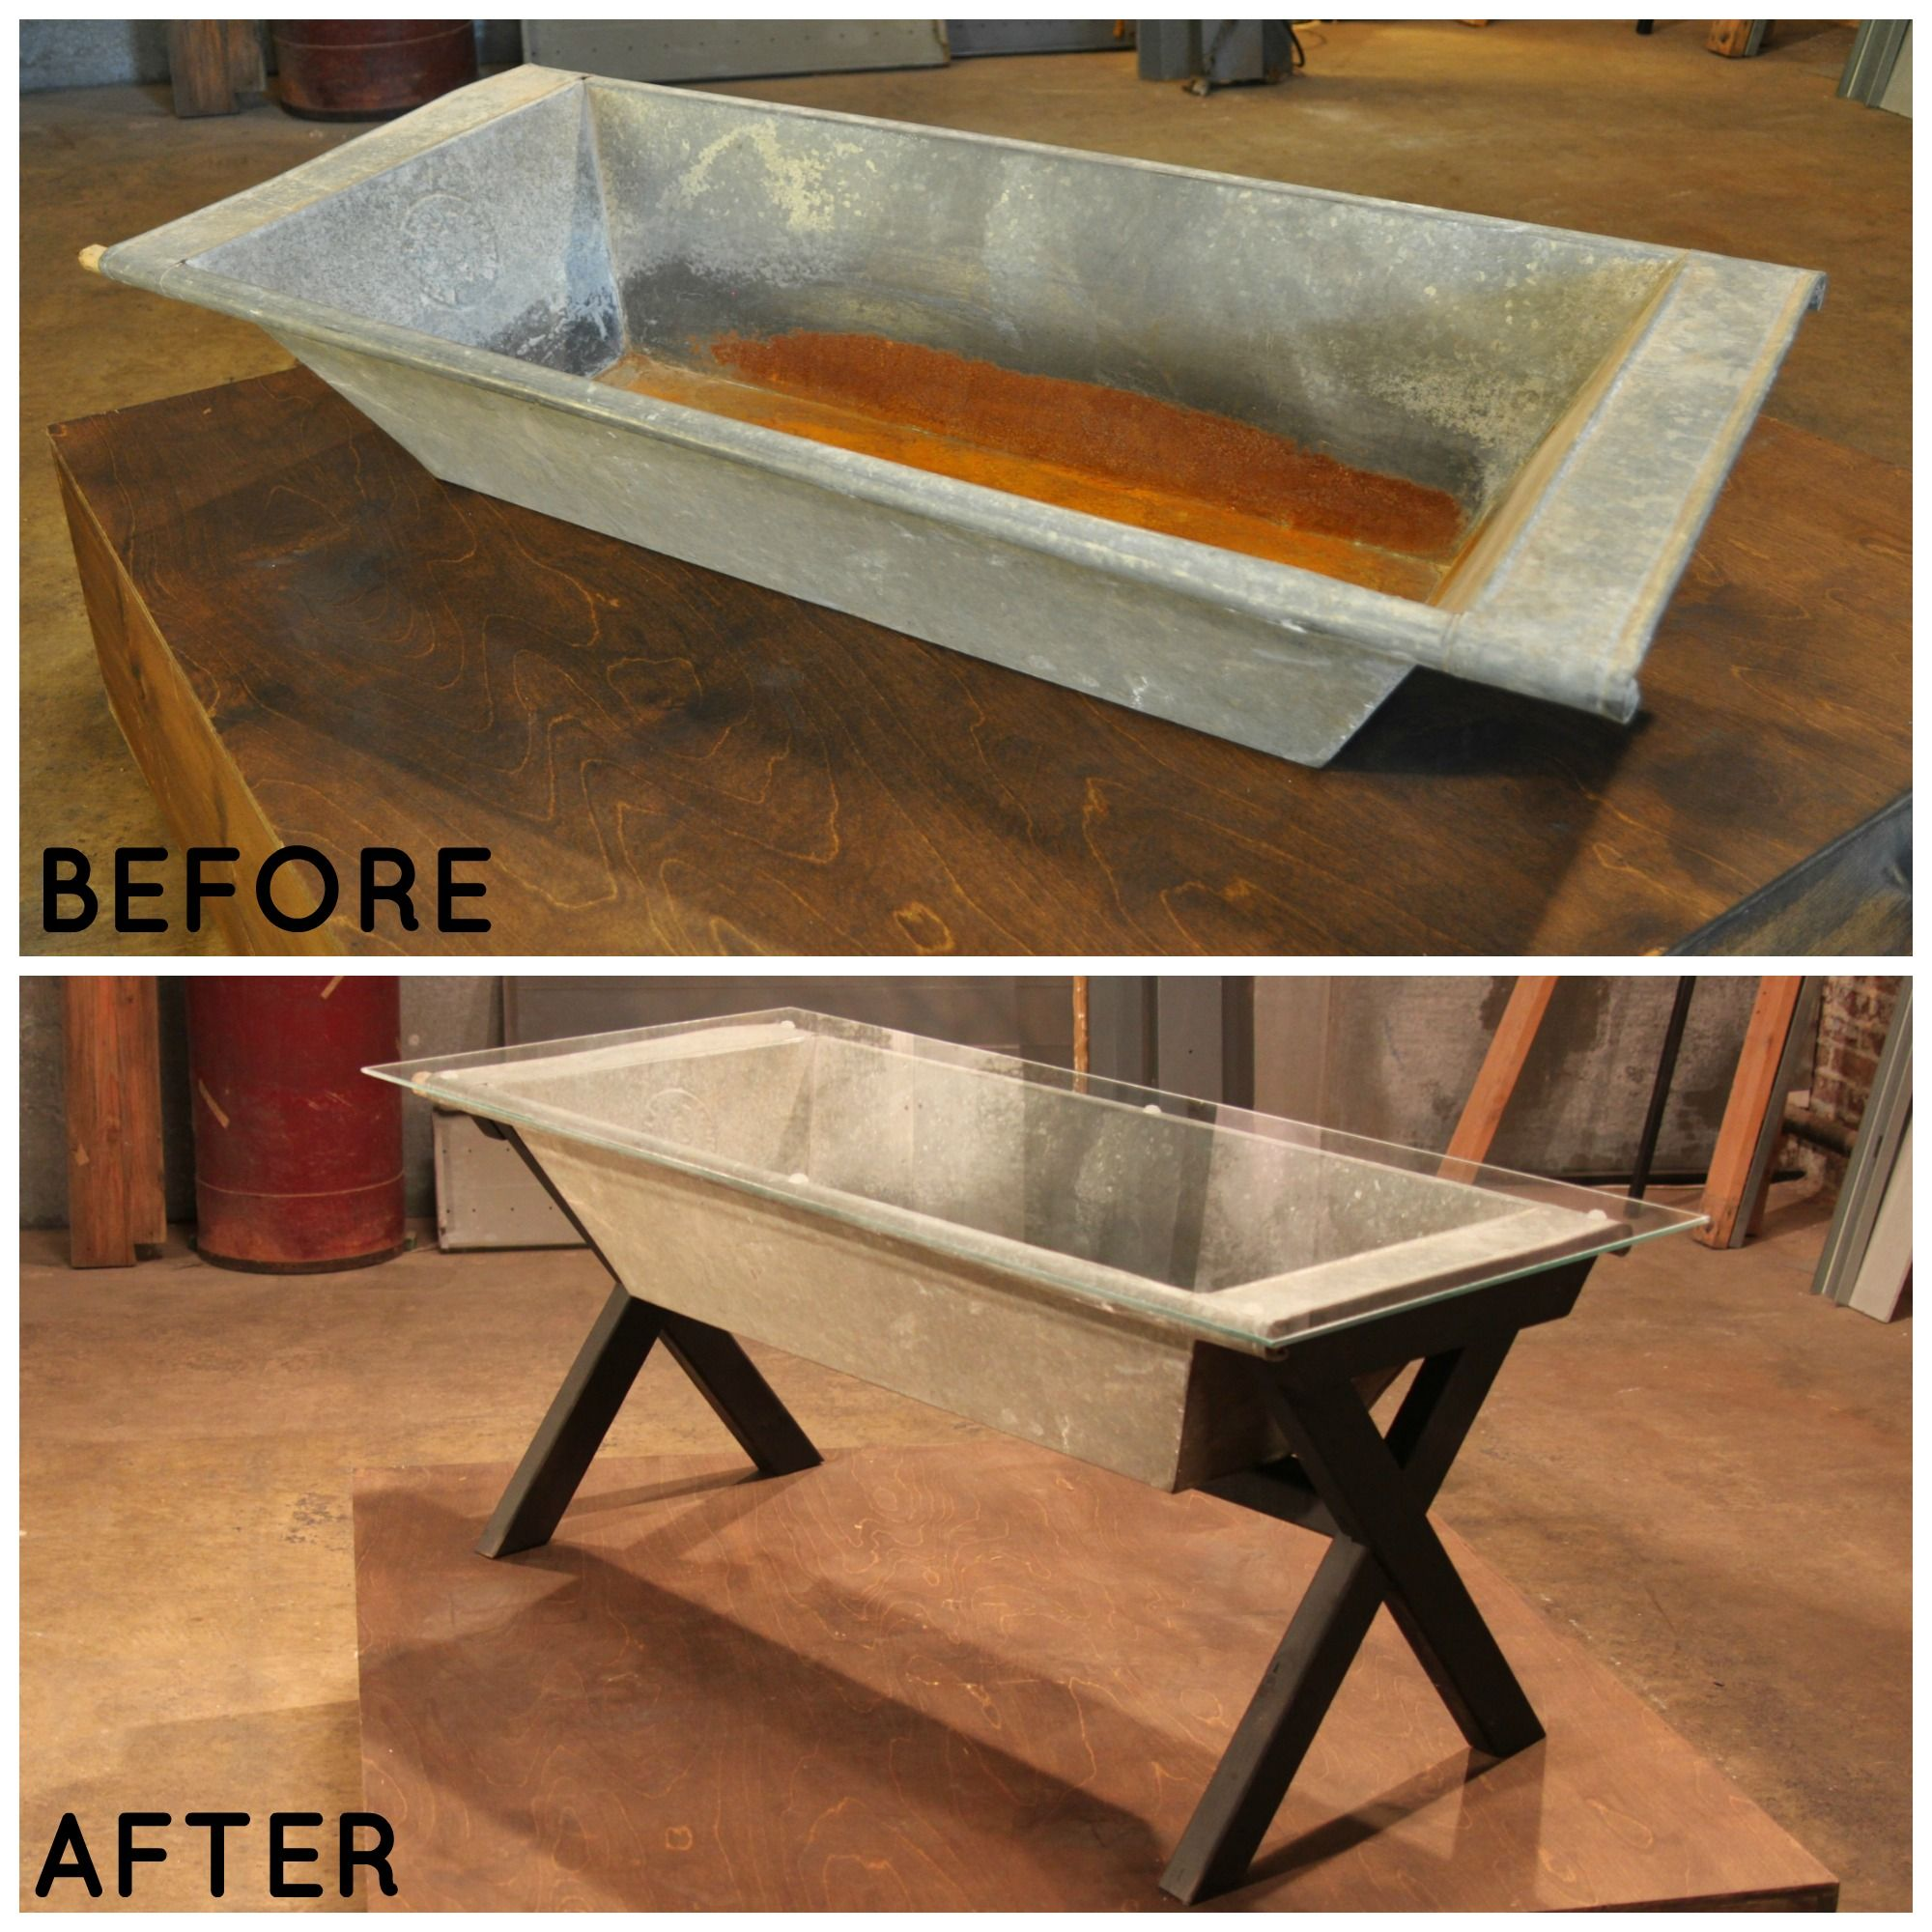 Barn Trough Becomes A Rustic Coffee Table >> Httpwwwgreatamericancountrycomphotorustic Buffet Table Soc=Pinterest